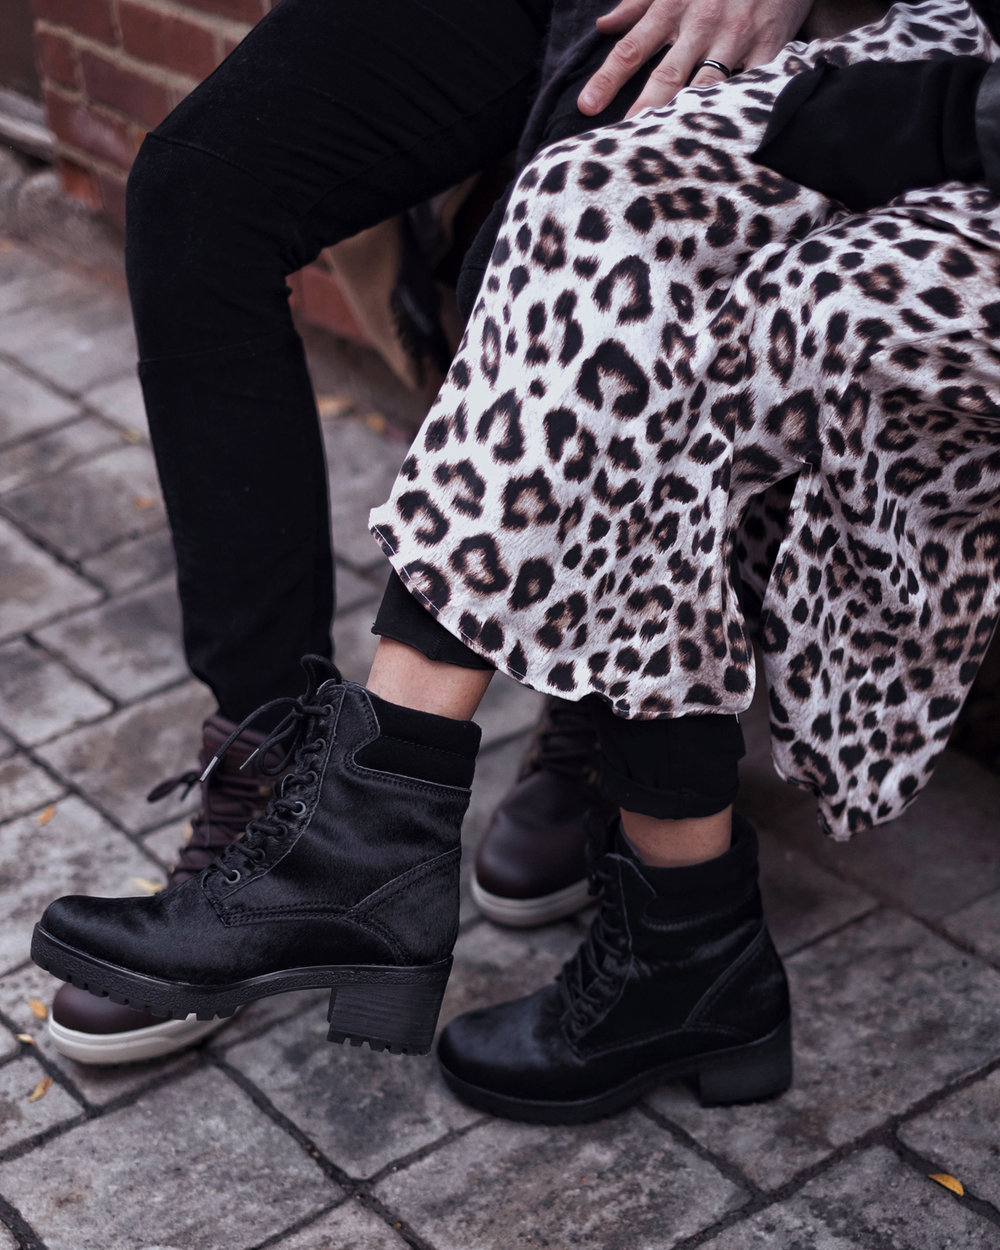 Leopard pring silk dress by Equipment - cute Fashionable WInter boots by Cougar - men's Cranston boots and womens Darbi boots - photos by Melanie Rees for woahstyle.com for Nathalie Martin.JPG